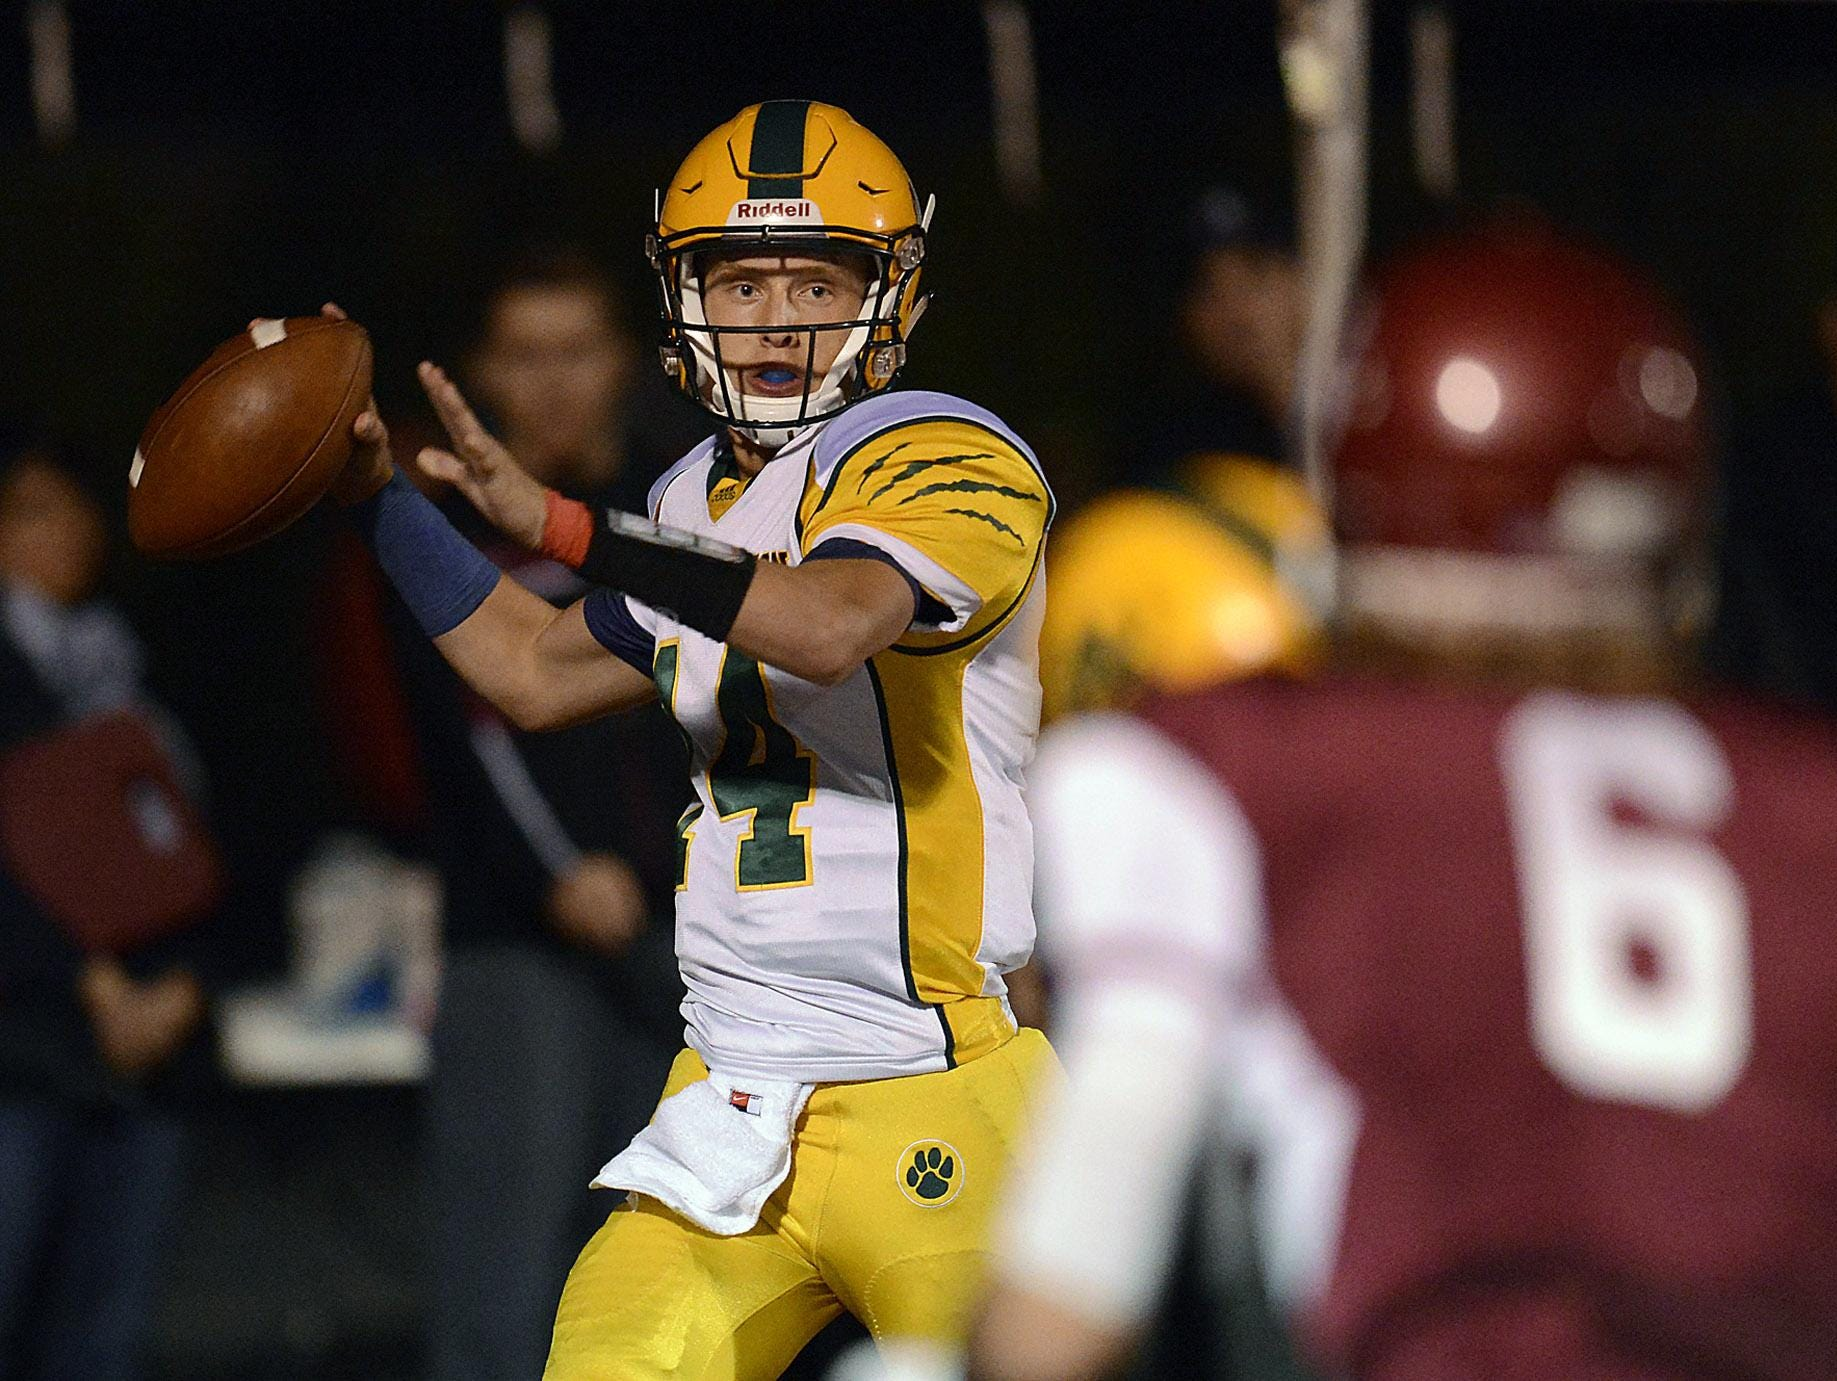 Ashwaubenon senior quarterback Will Ark (14) is tied for the Fox River Classic Conference lead with 21 touchdown passes this season.